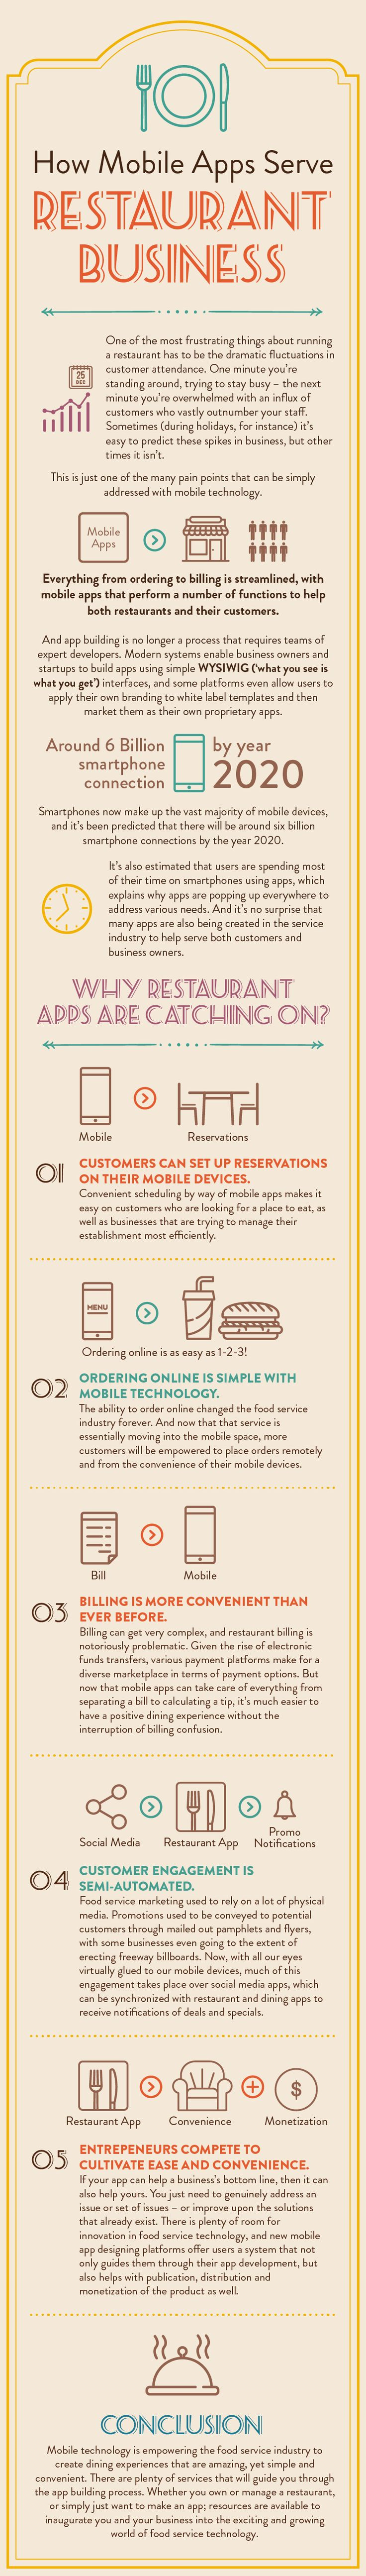 How mobile apps and email marketing can serve a multi-tier marketing solution for your restaurant business.